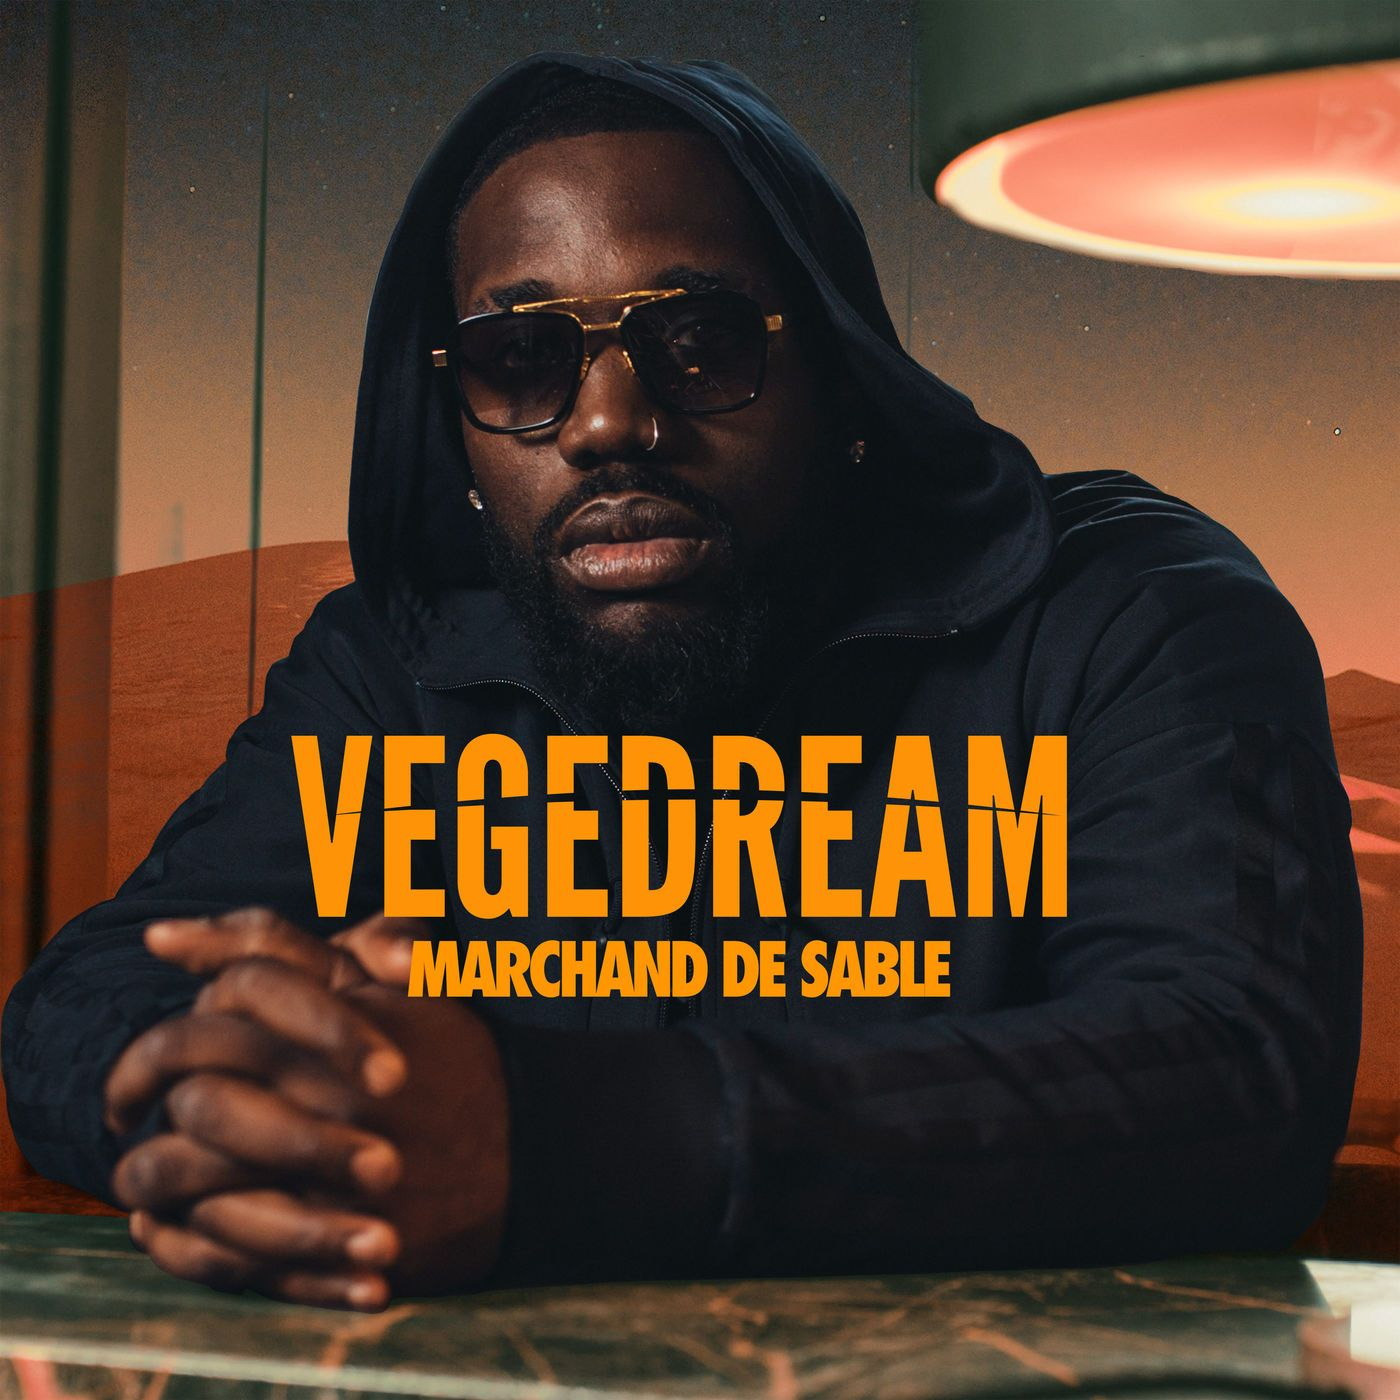 Vegedream - Marchand De Sable album cover